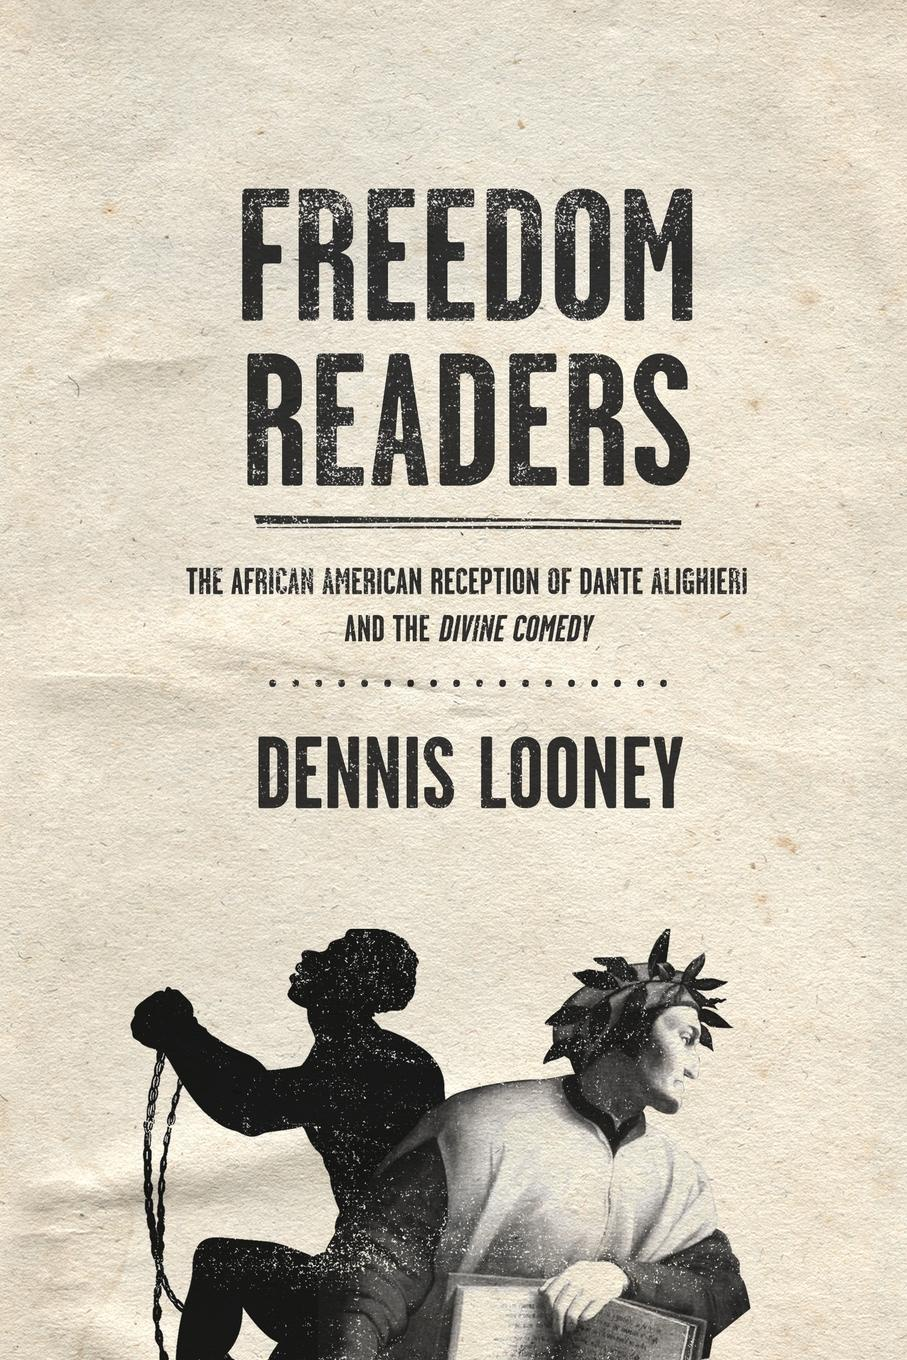 Freedom Readers. The African American Reception of Dante Alighieri and the Divine Comedy. Dennis Looney